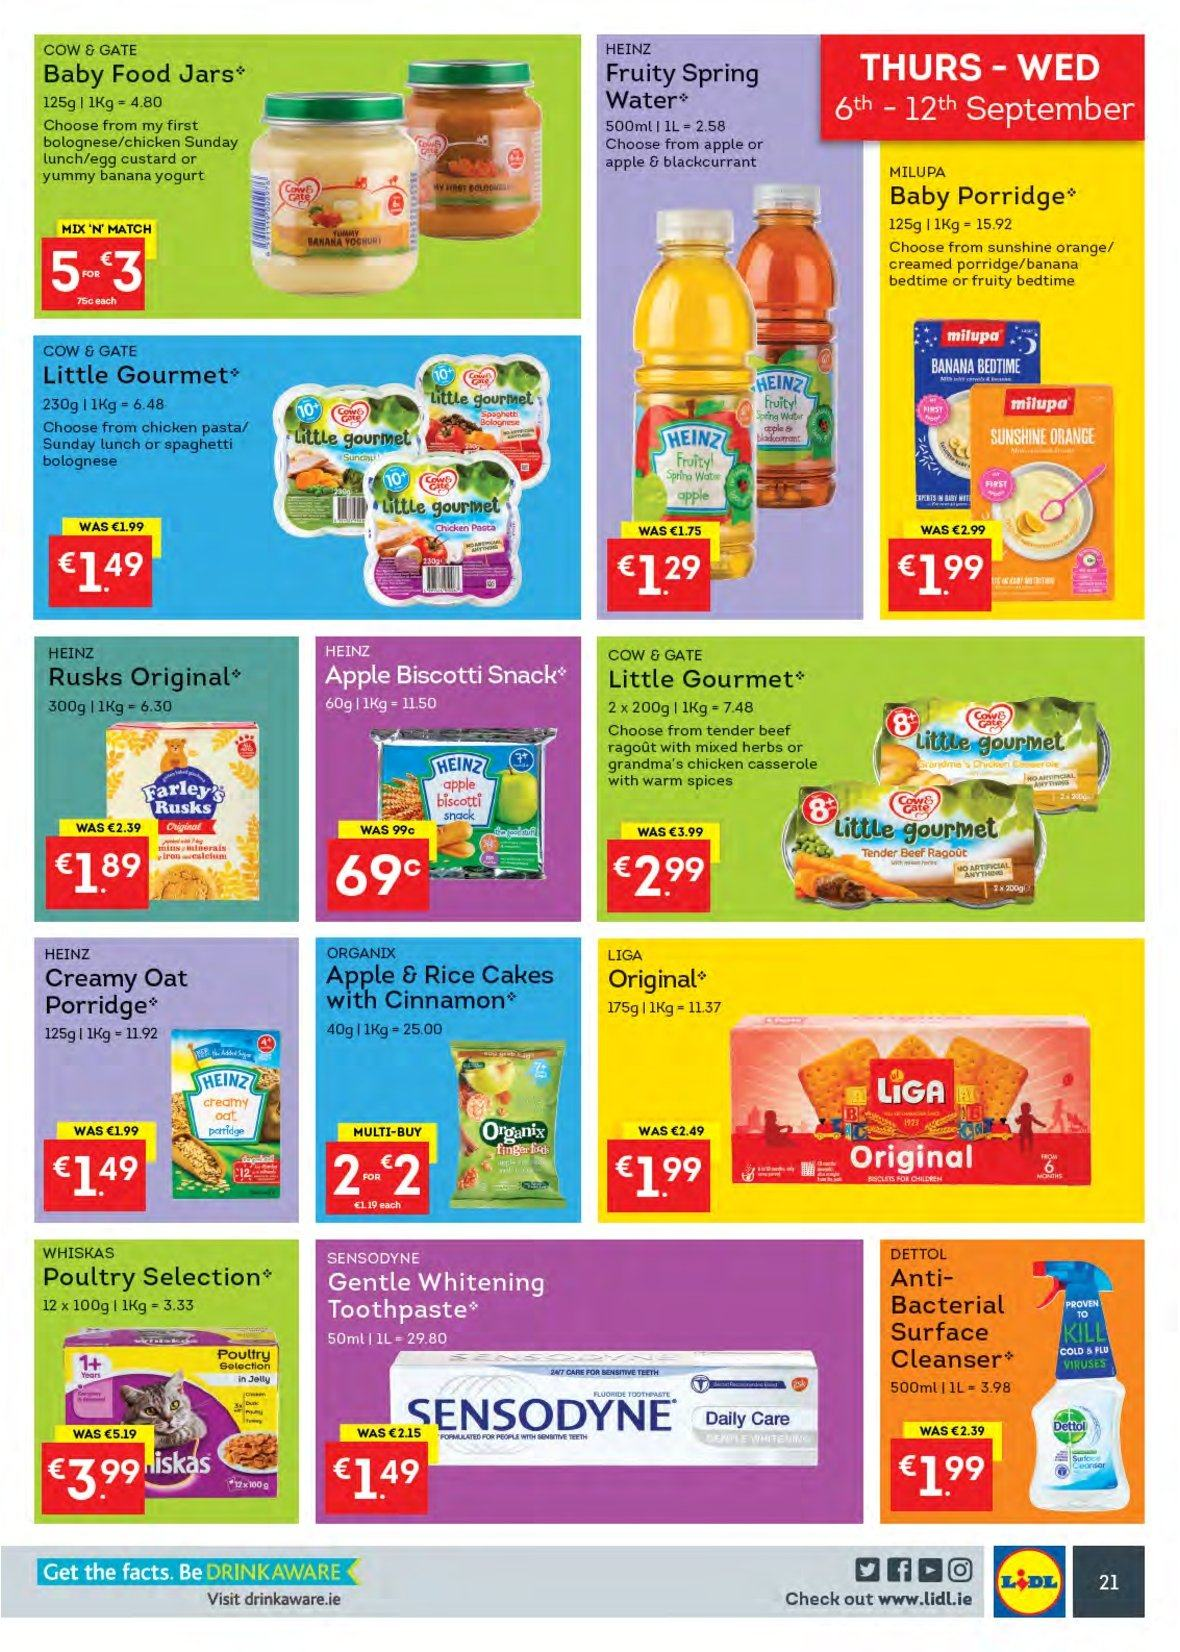 Lidl offer  - 3.9.2018 - 9.9.2018 - Sales products - cake, rusks, orange, custard, yoghurt, eggs, Sunshine, biscotti, snack, oats, Heinz, porridge, rice, pasta, herbs, cinnamon, spring water, Dettol, toothpaste, Sensodyne, cleanser, casserole, jar, Whiskas, cart, Cold & Flu. Page 25.